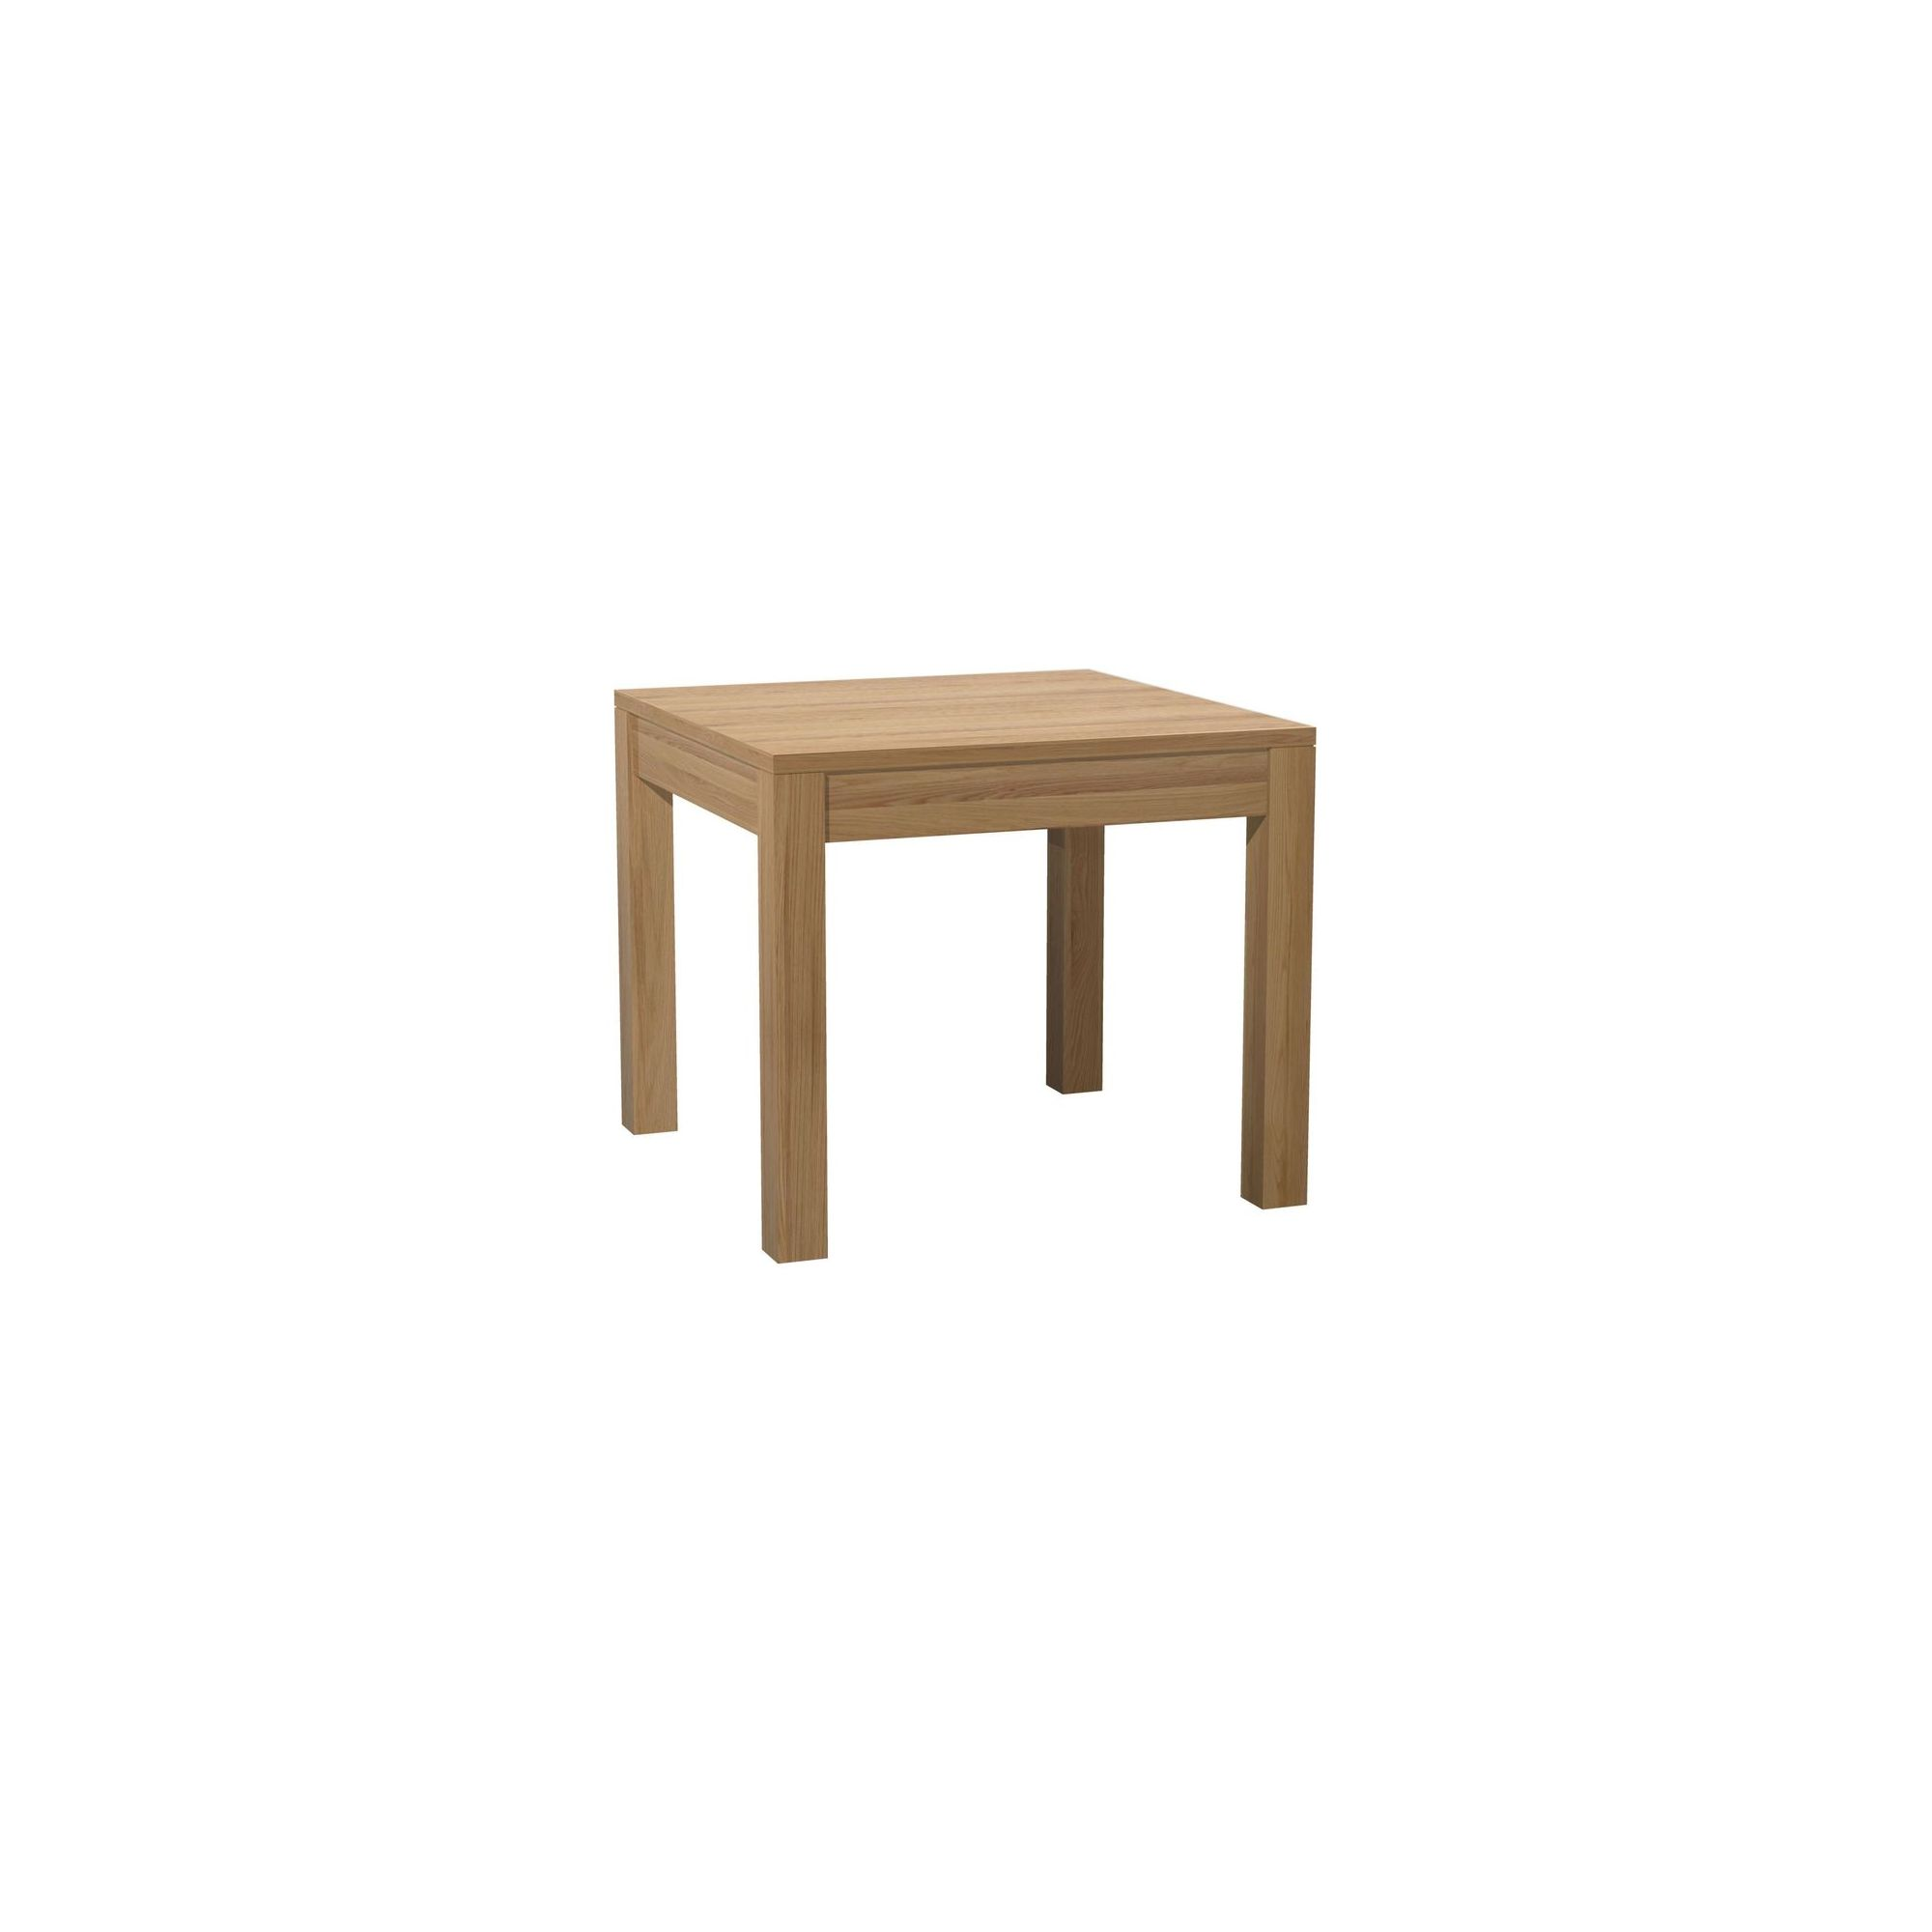 Kelburn Furniture Milano Small Square Solid Oak Dining Table in Clear Satin Lacquer